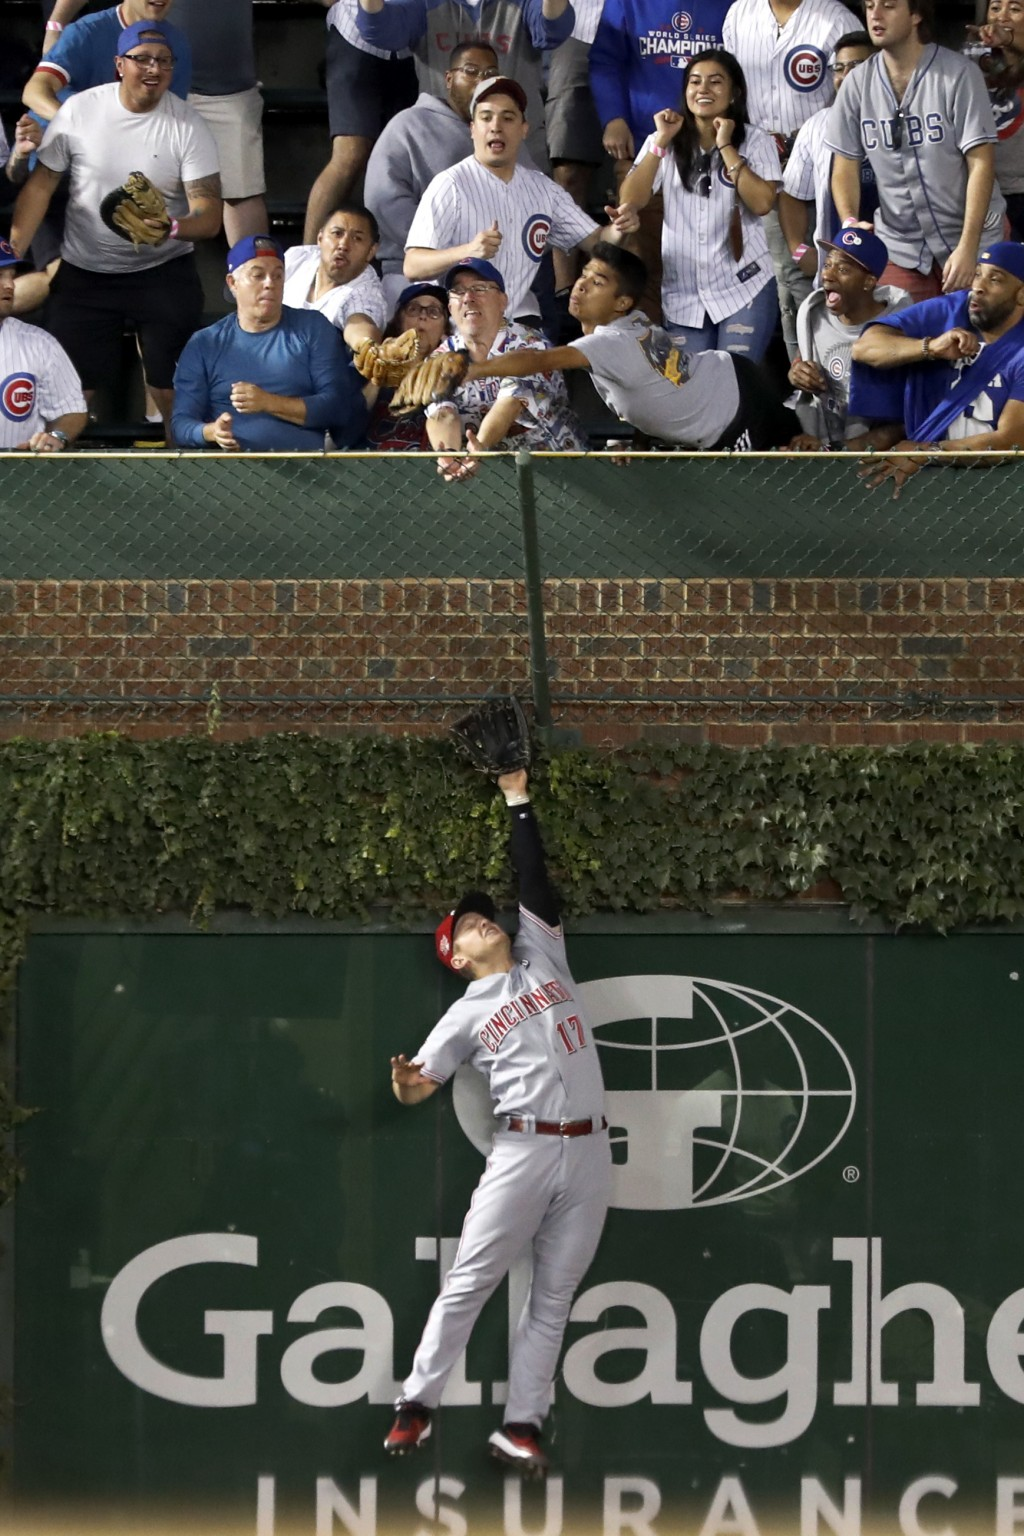 A fan catches a home run by Chicago Cubs' Willson Contreras as Cincinnati Reds' Josh VanMeter leaps for the ball during the seventh inning of a baseba